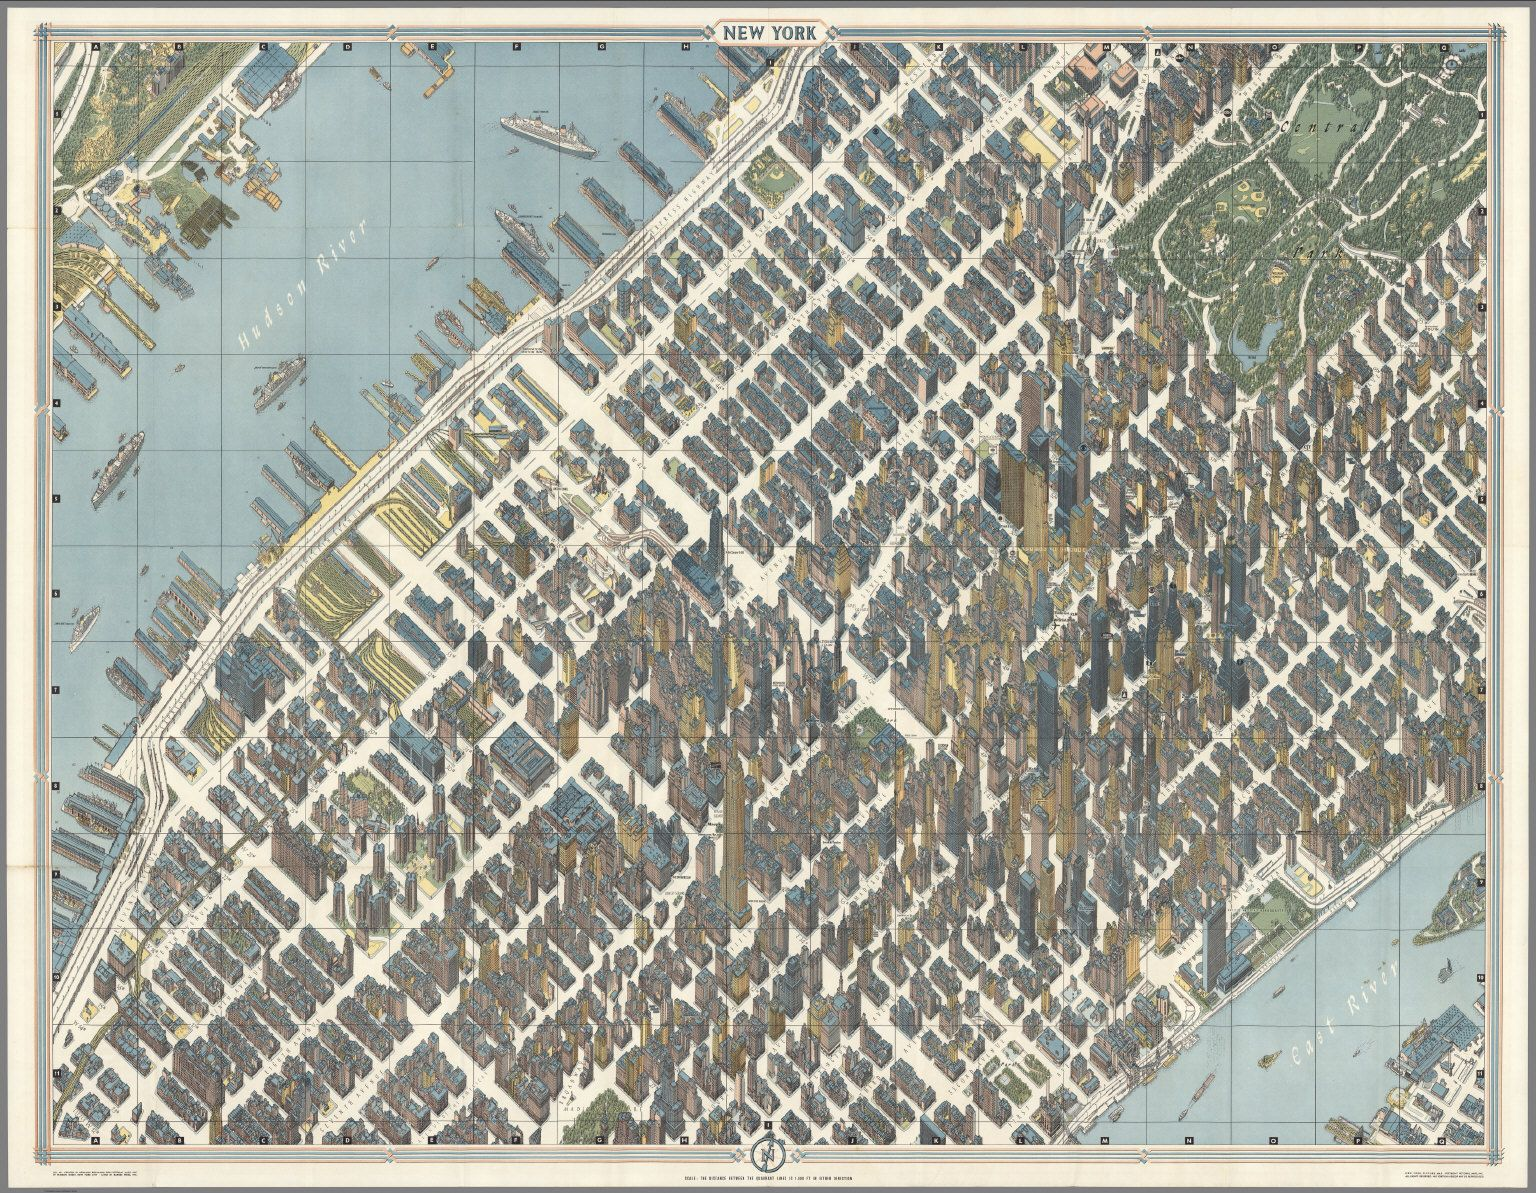 New York City Picture Map A D Map Of Midtown Manhattan - Nyc map empire state building